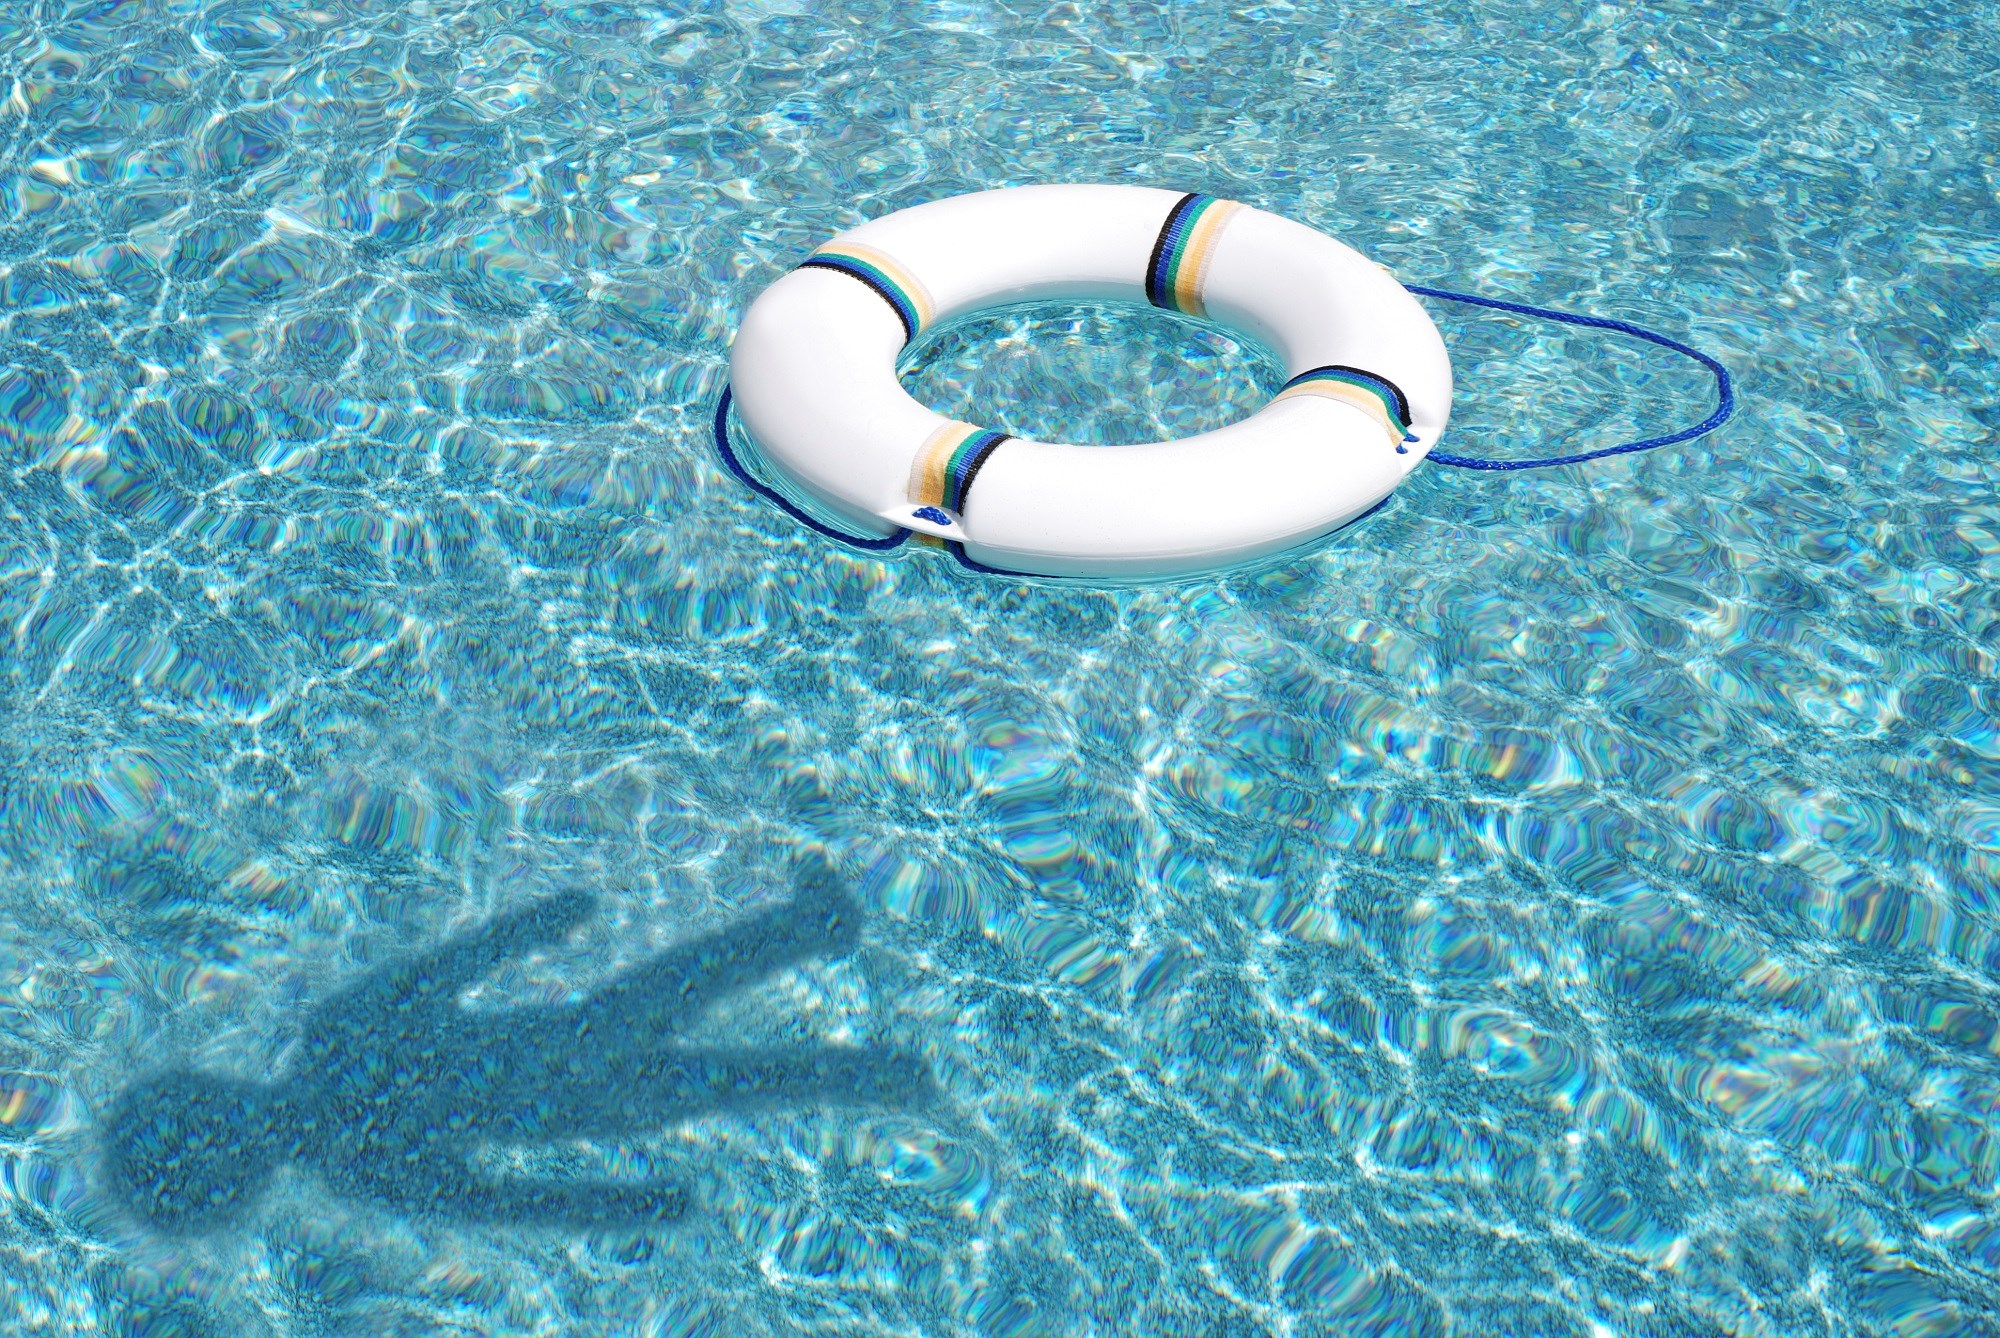 AAP Provides Safety Precautions to Prevent Drowning